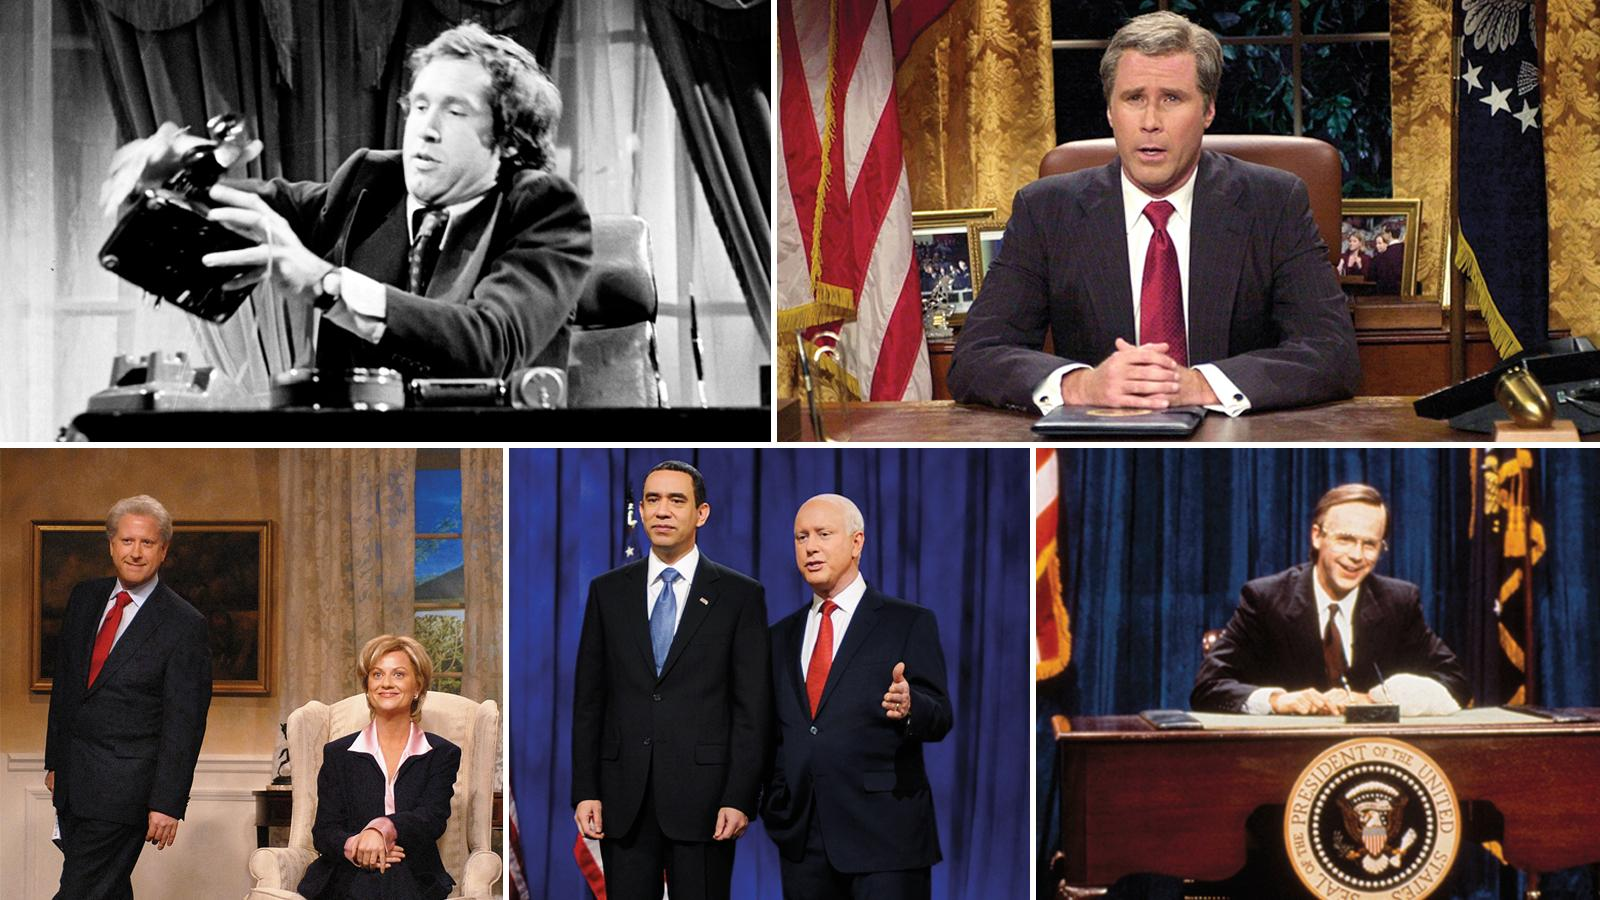 Clockwise from top left: Chevy Chase, Will Ferrell, Dana Carvey, Fred Armisen and Darrell Hammond, Darrell Hammond  and Amy Poehler.